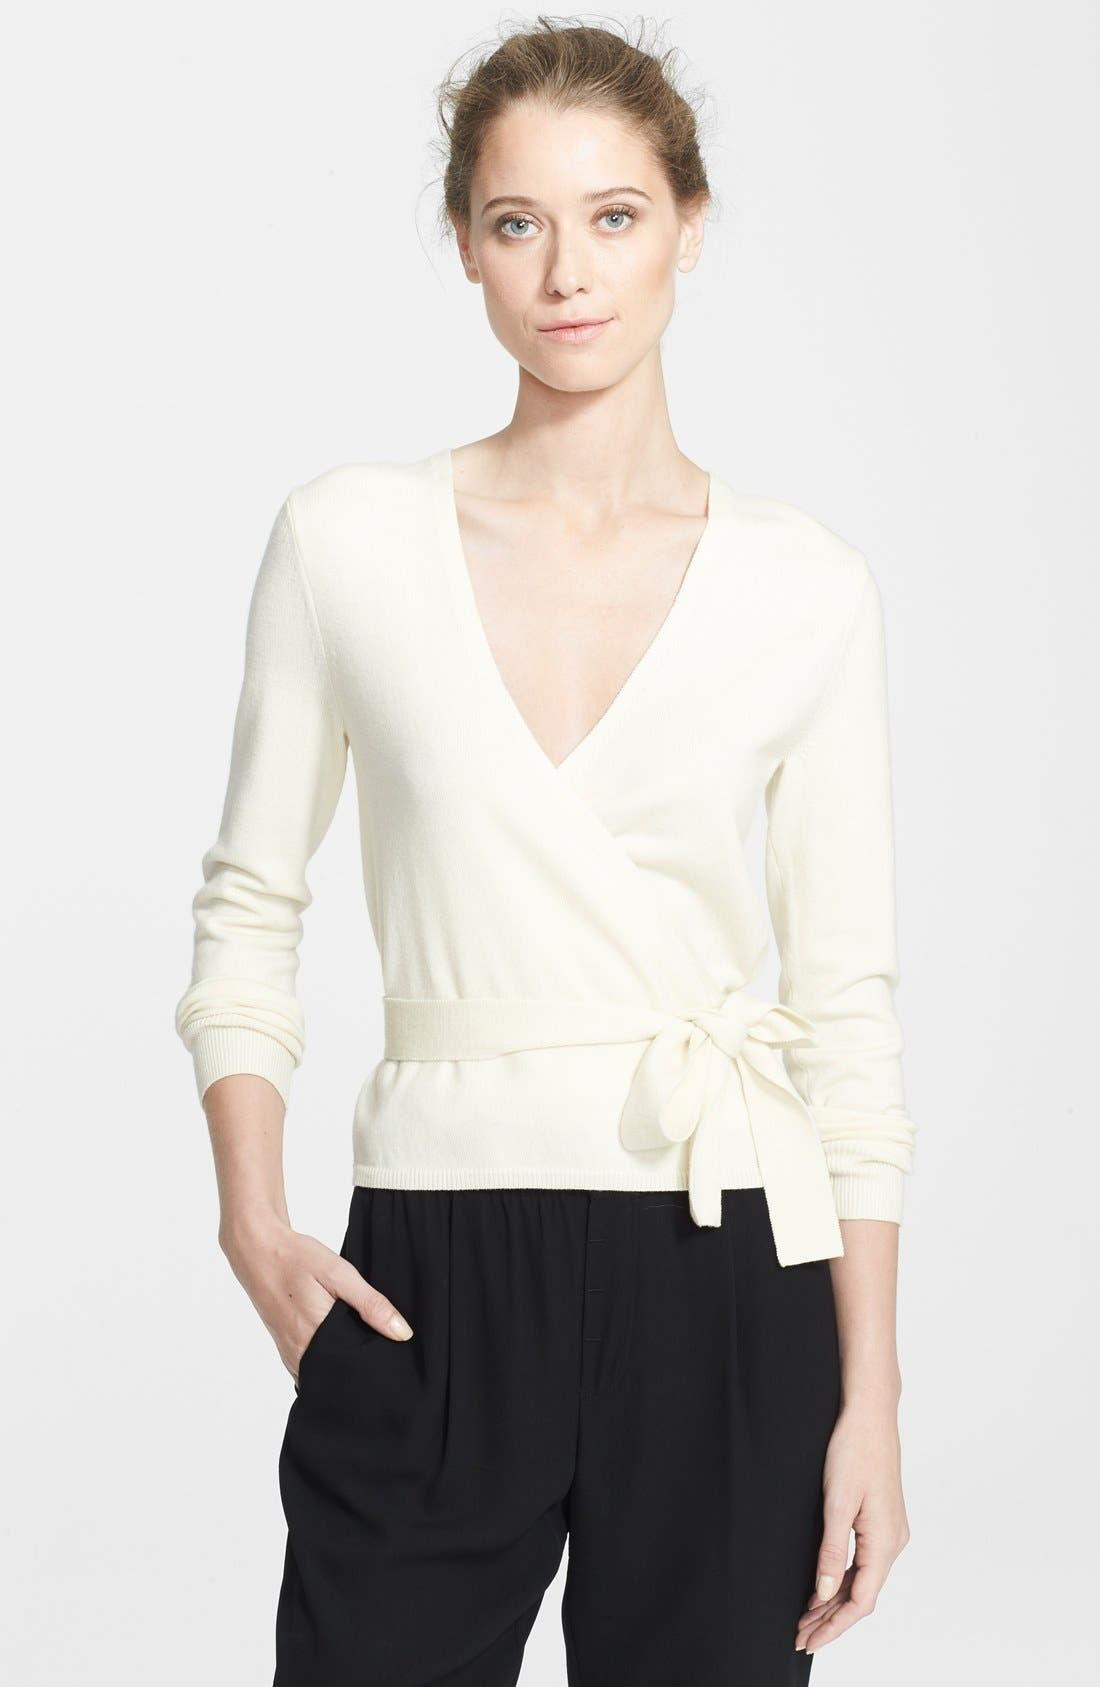 Alternate Image 1 Selected - Diane von Furstenberg 'Ballerina' Cardigan Sweater